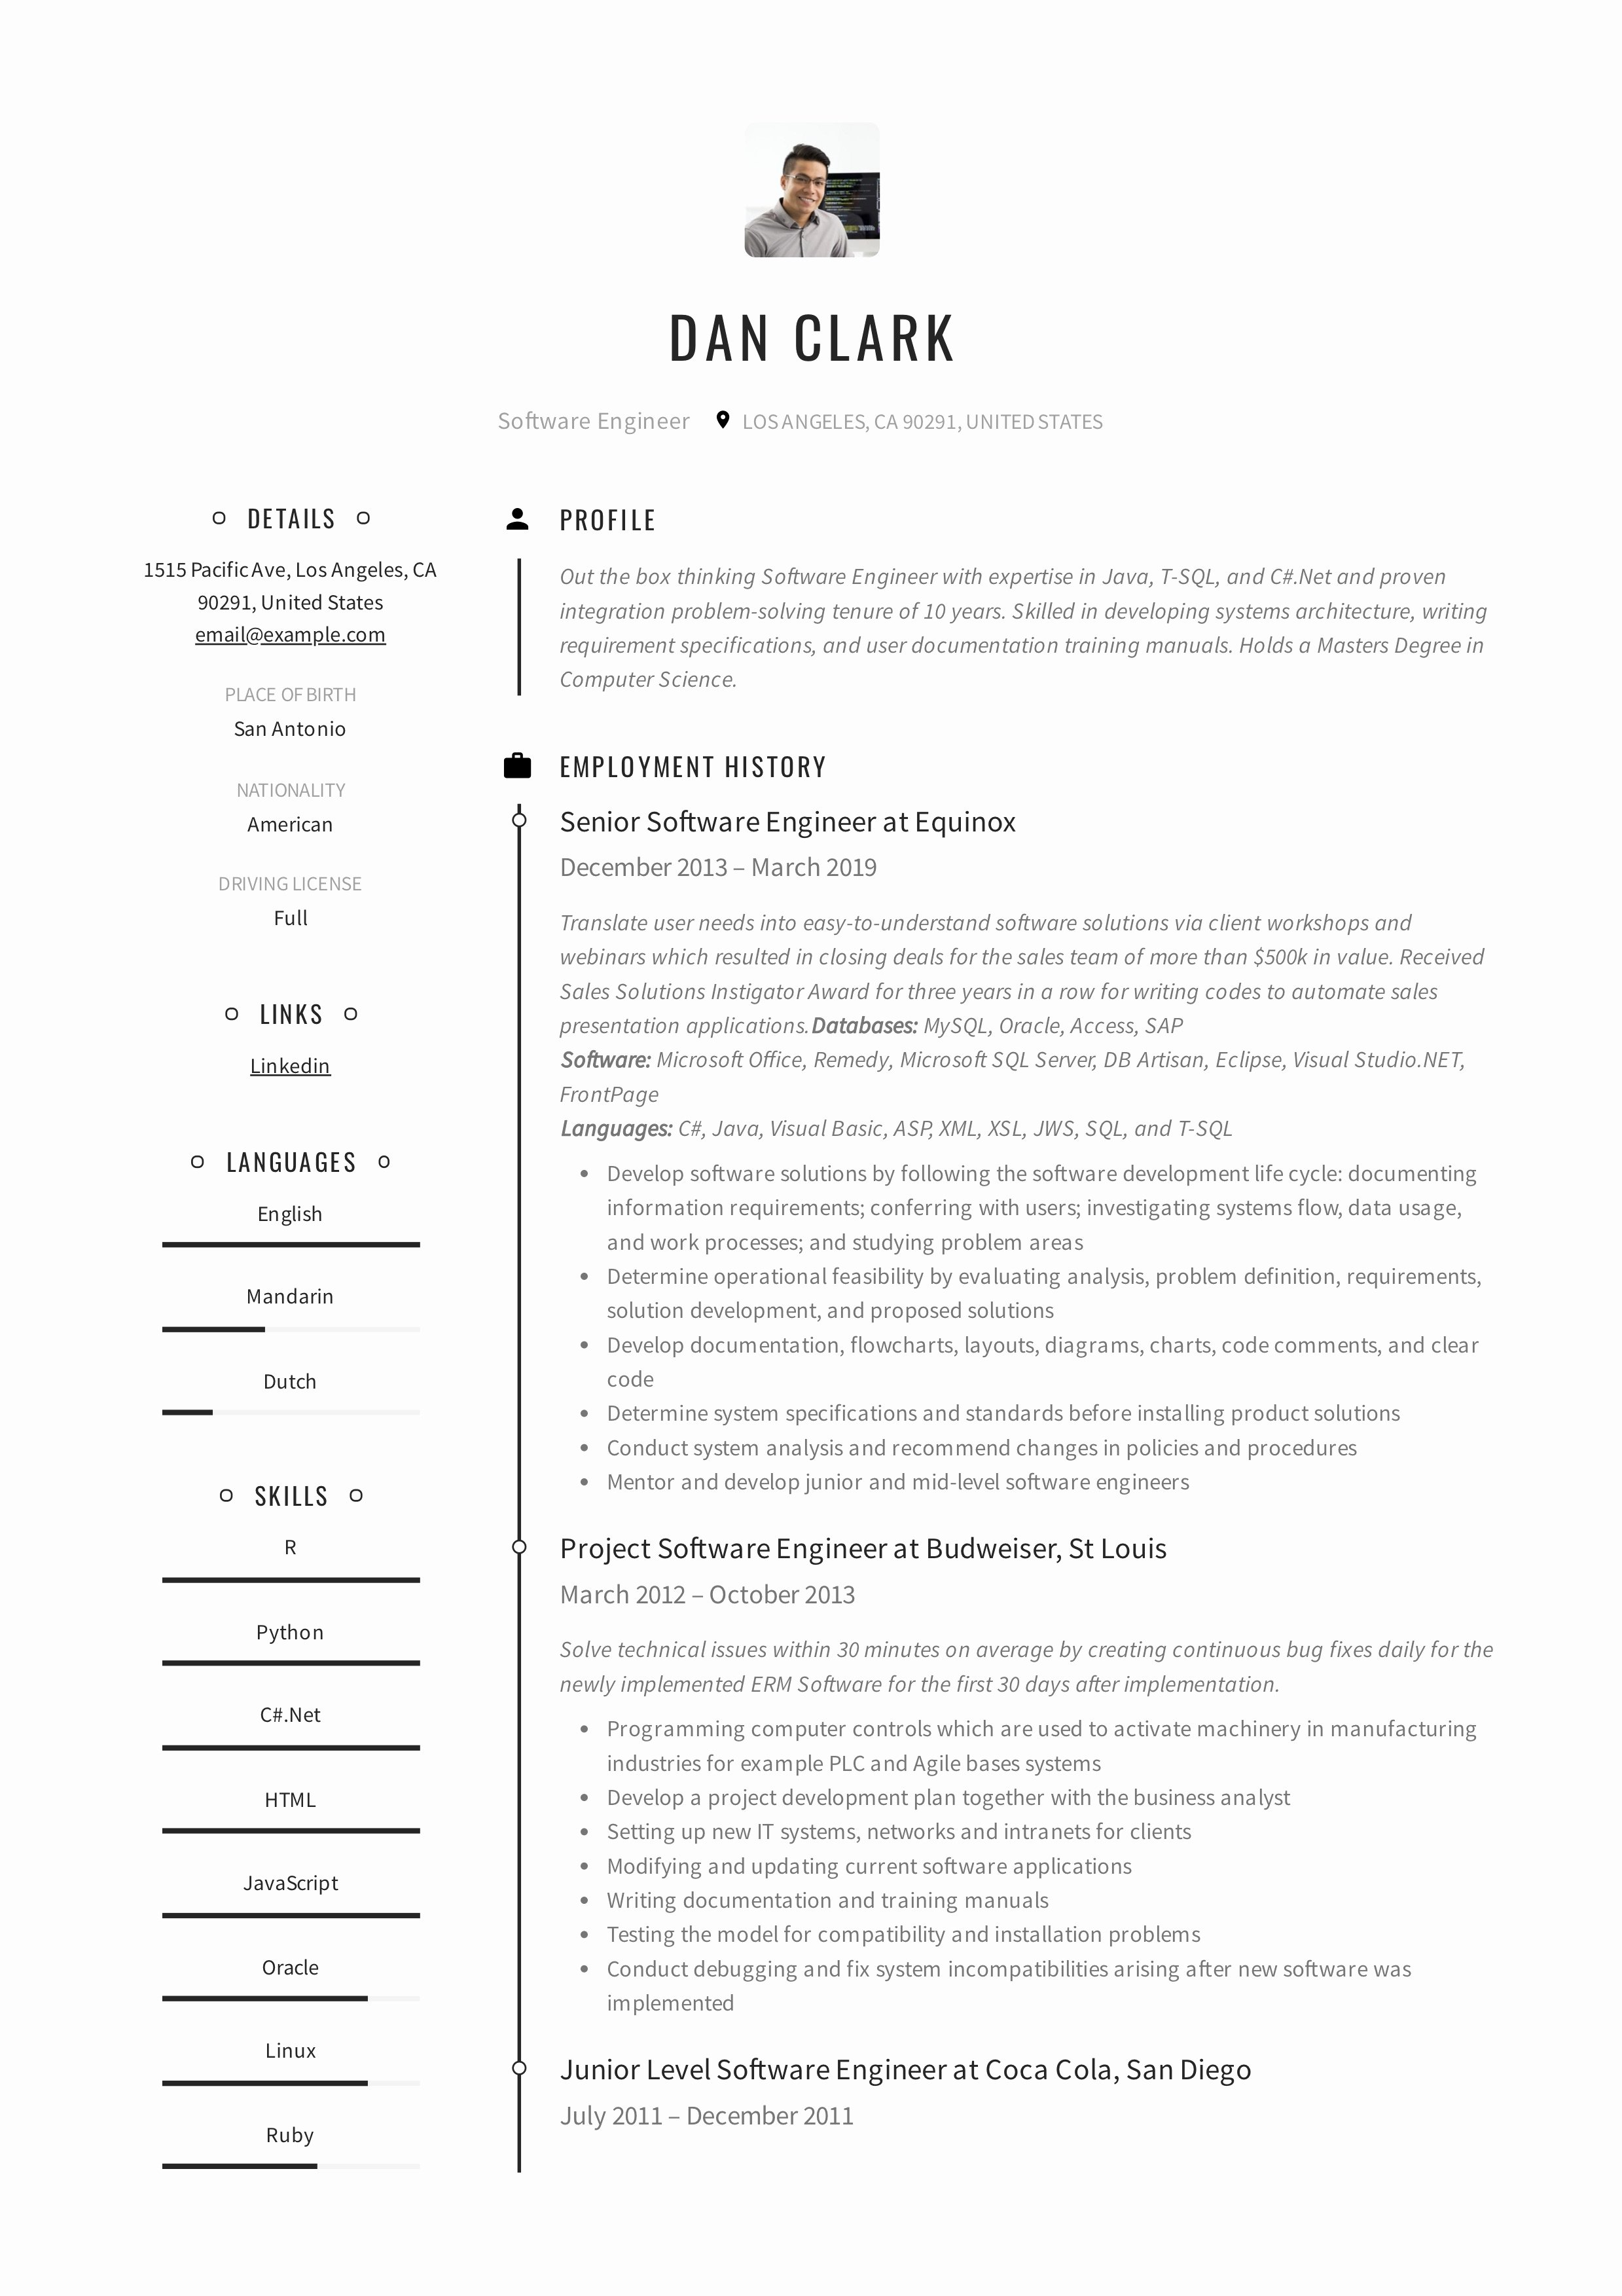 Free Resume Templates Pdf Awesome Resume Templates [2019] Pdf and Word